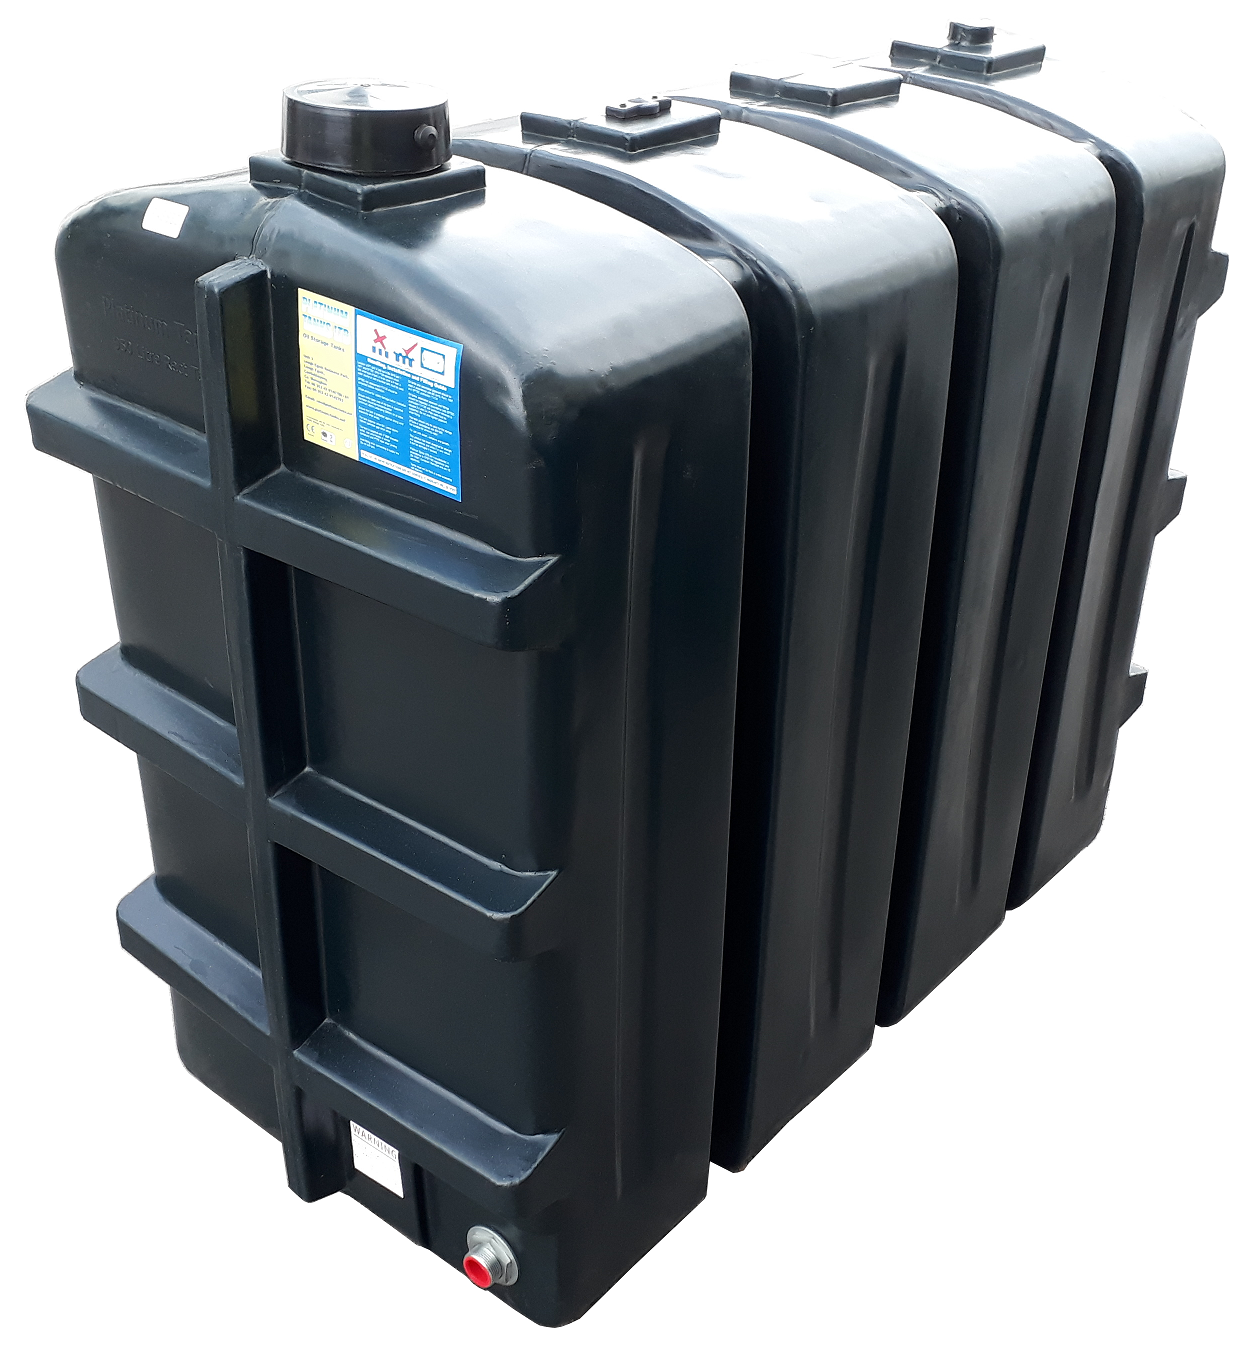 950 Litre Rectangular Oil Tank Image